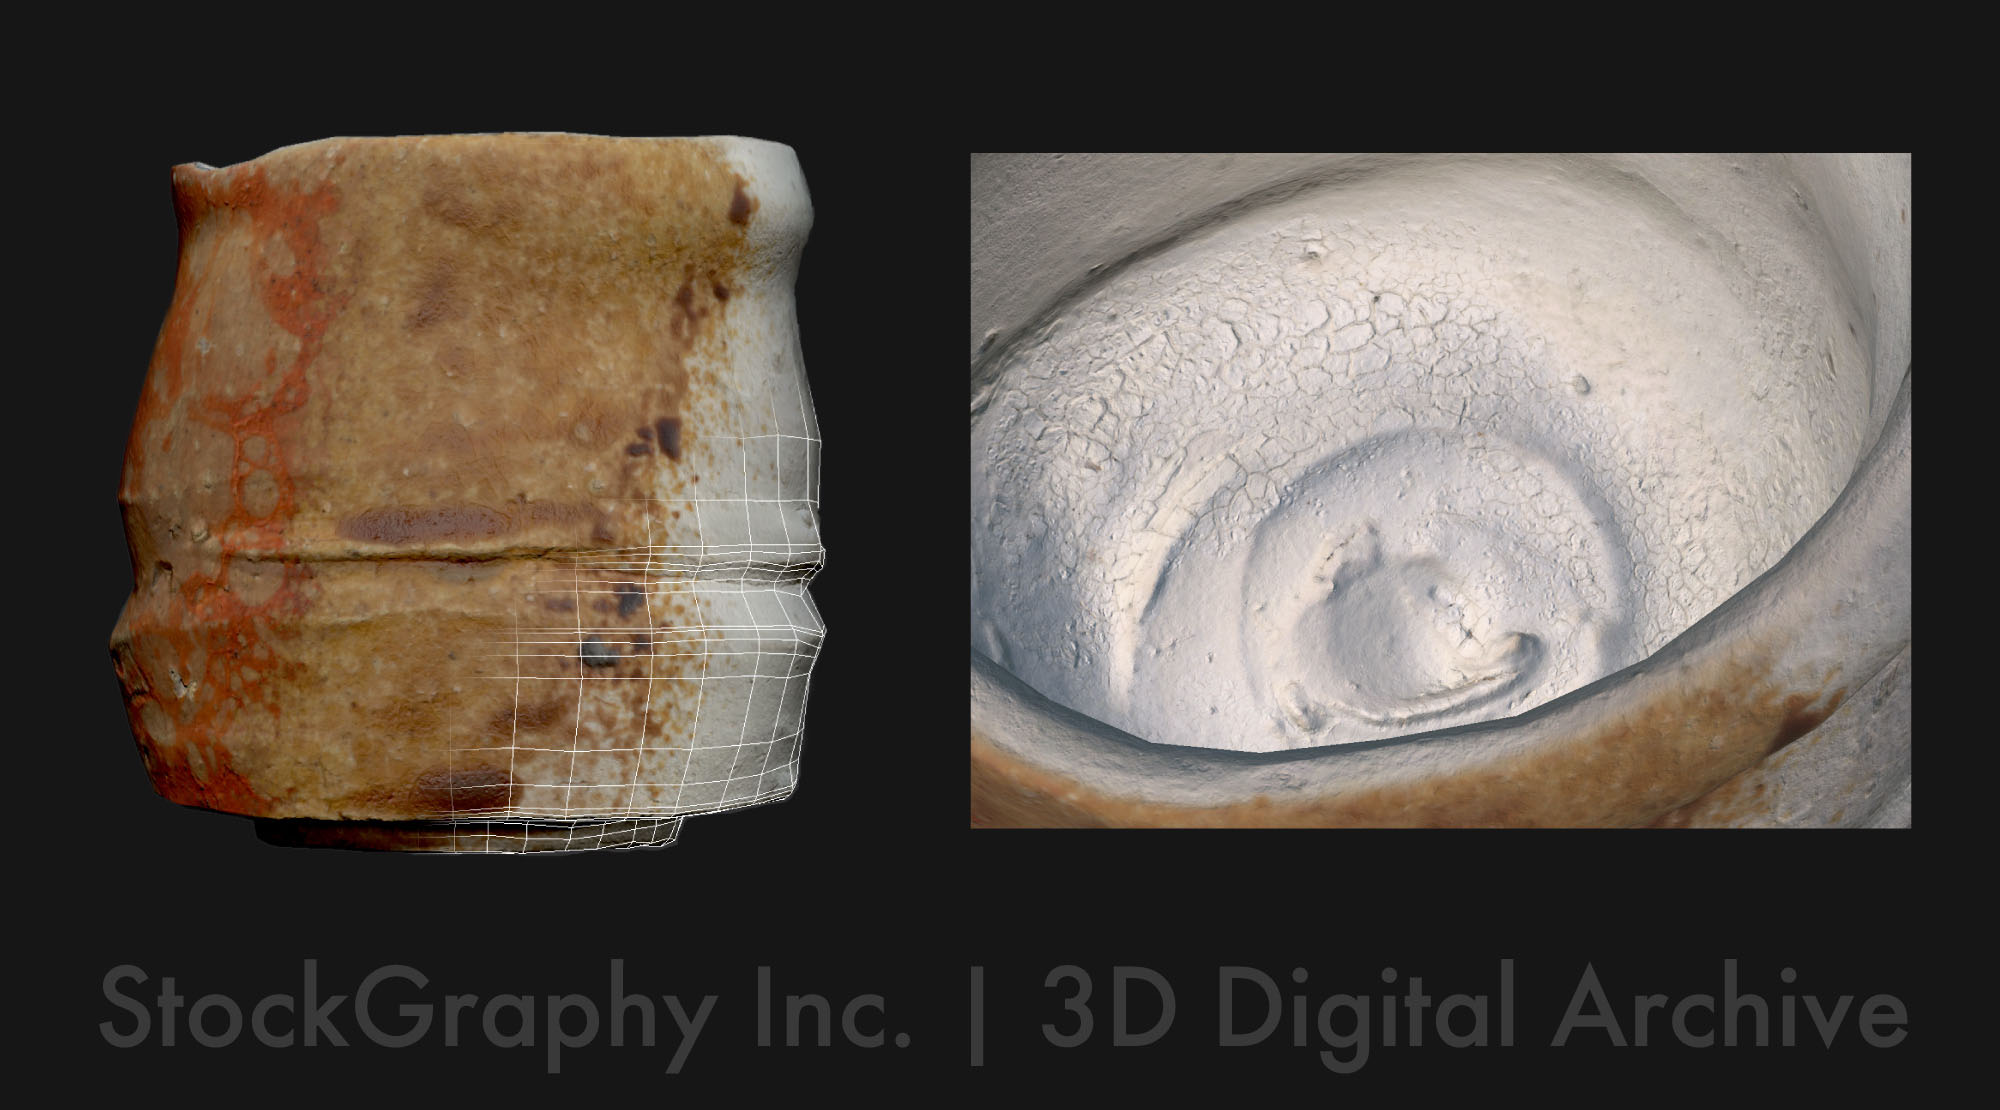 StockGraphy 3D Digital Archive